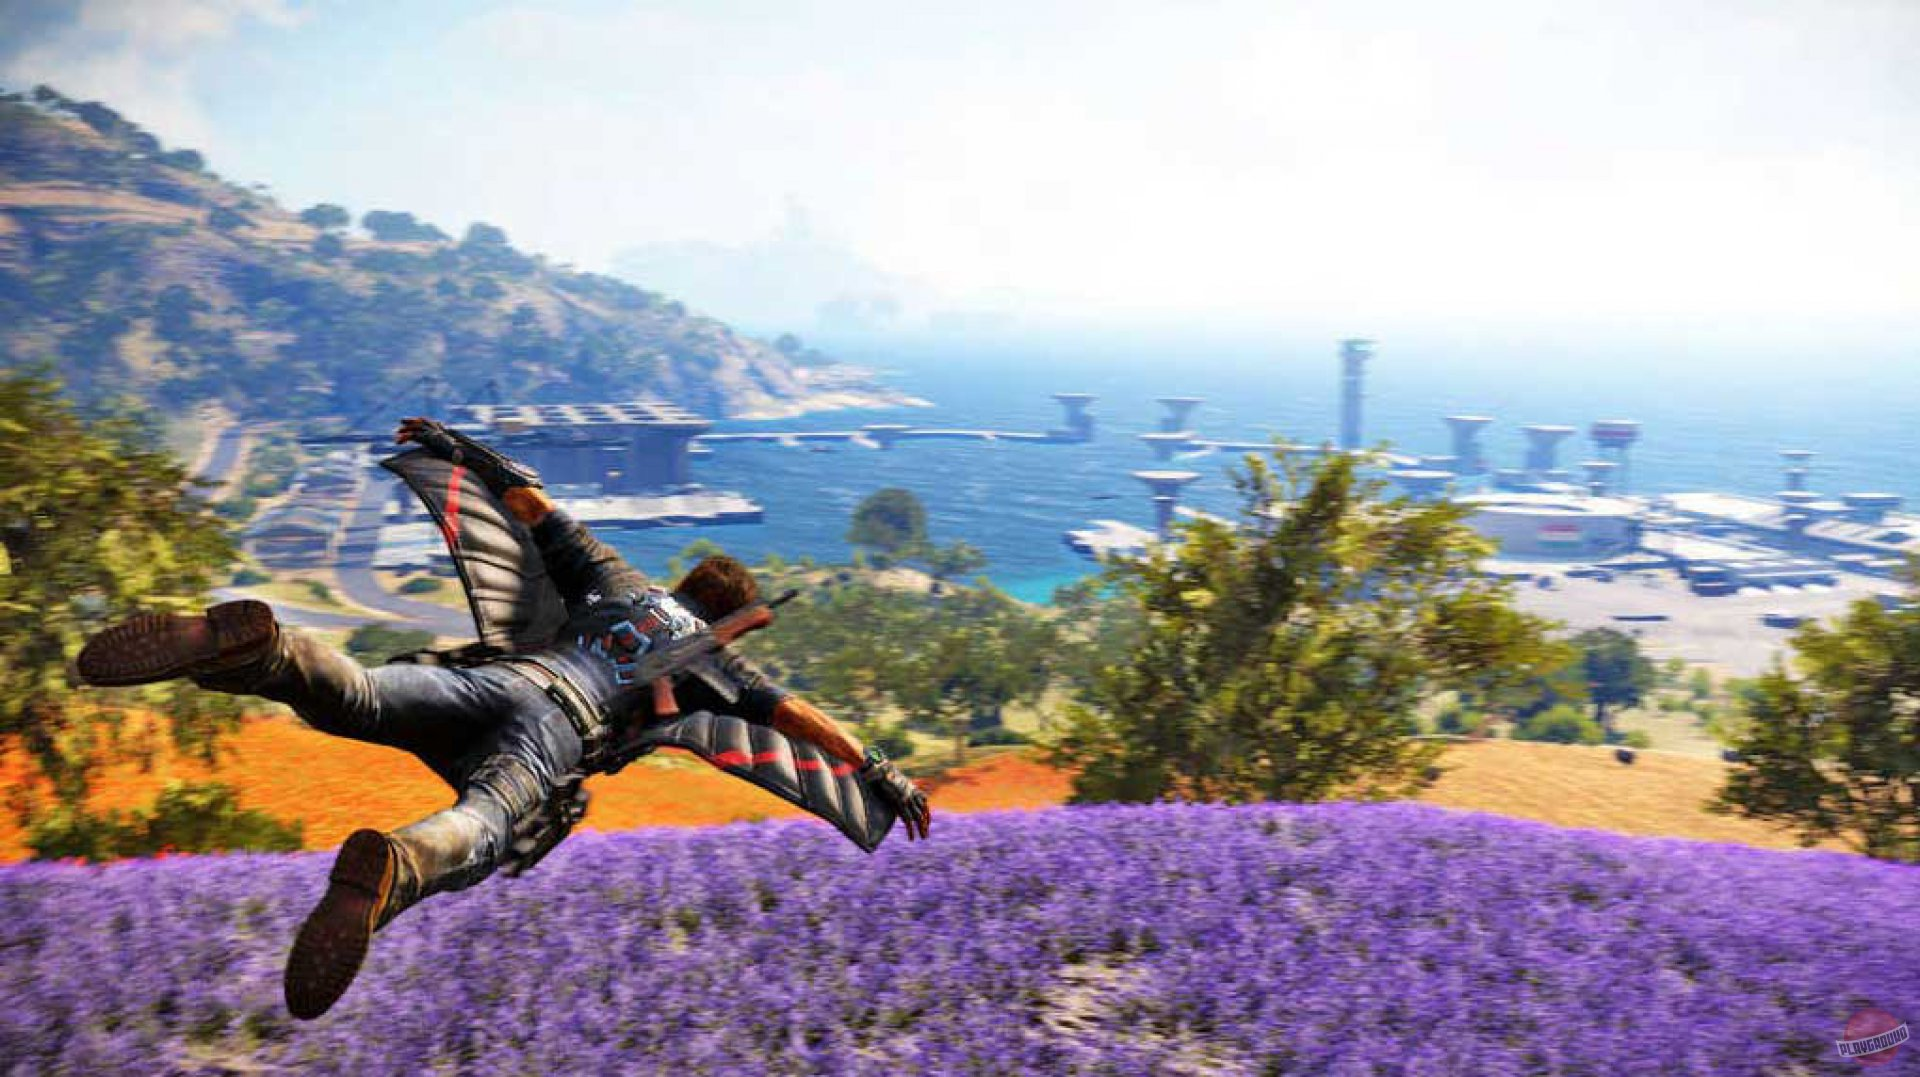 Just Cause 3 Wallpaper: Just Cause 3 HD Wallpapers & Screenshots Free Download